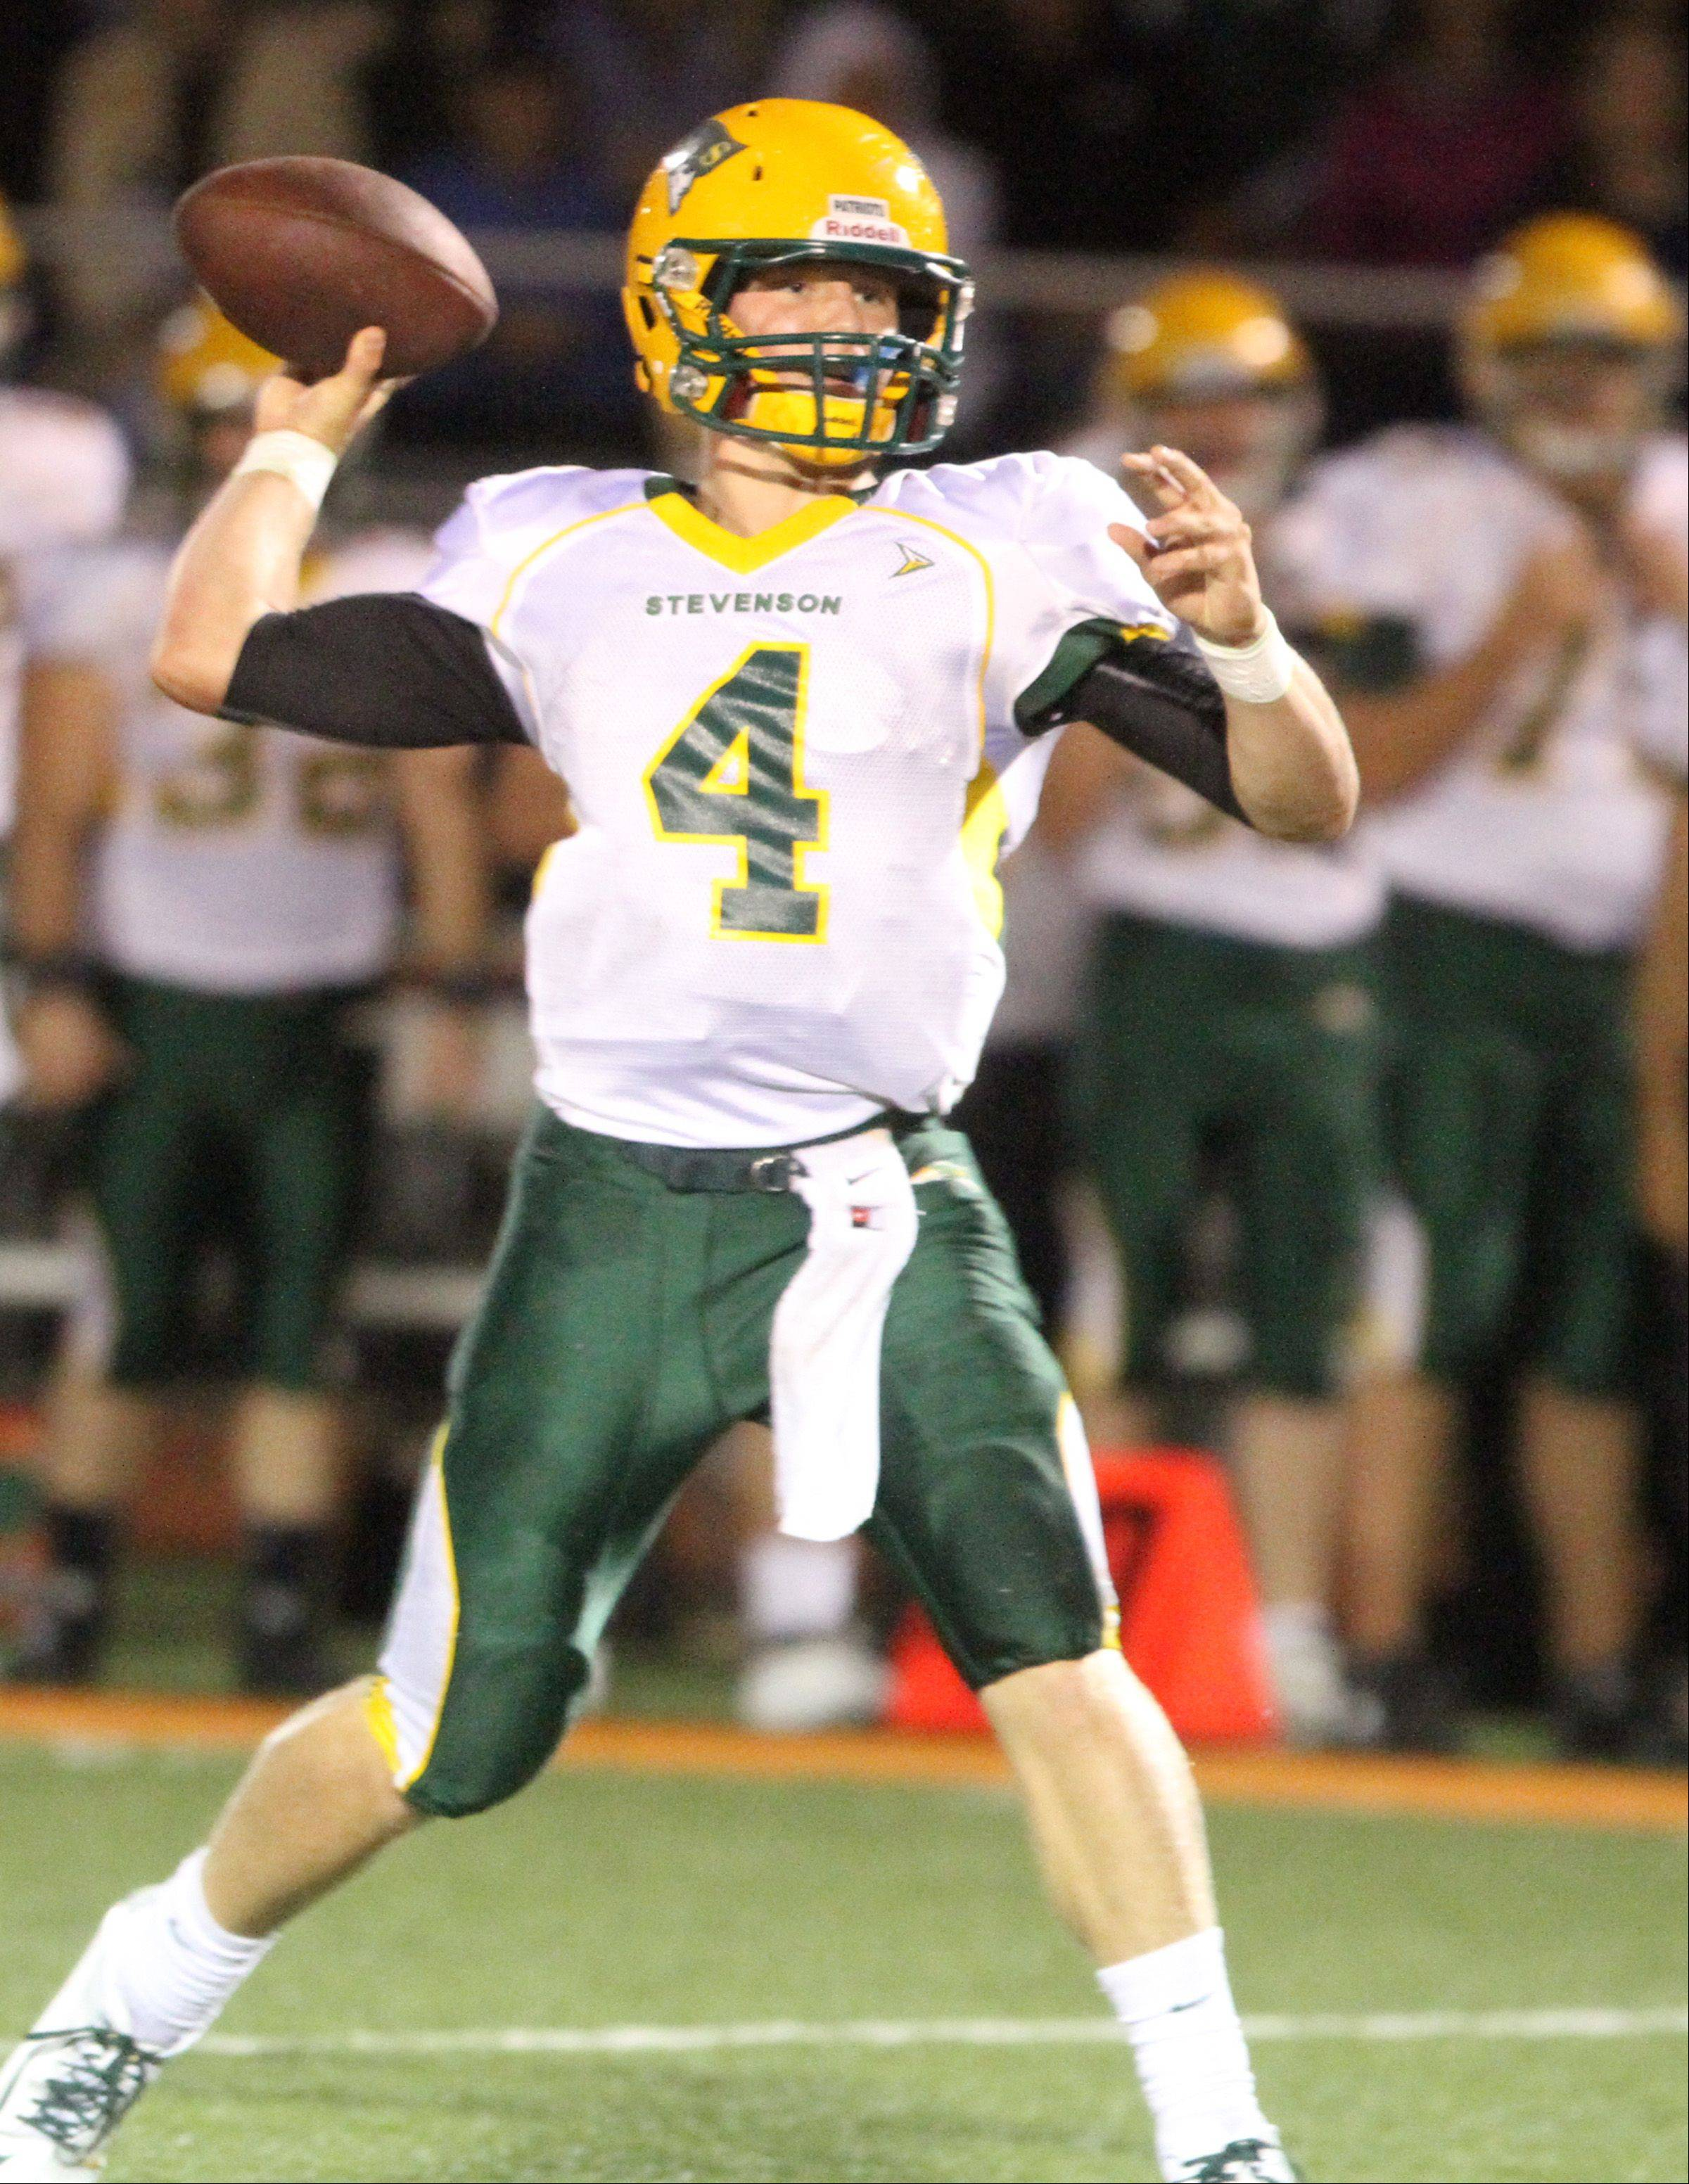 Stevenson quarterback Willie Bourbon: